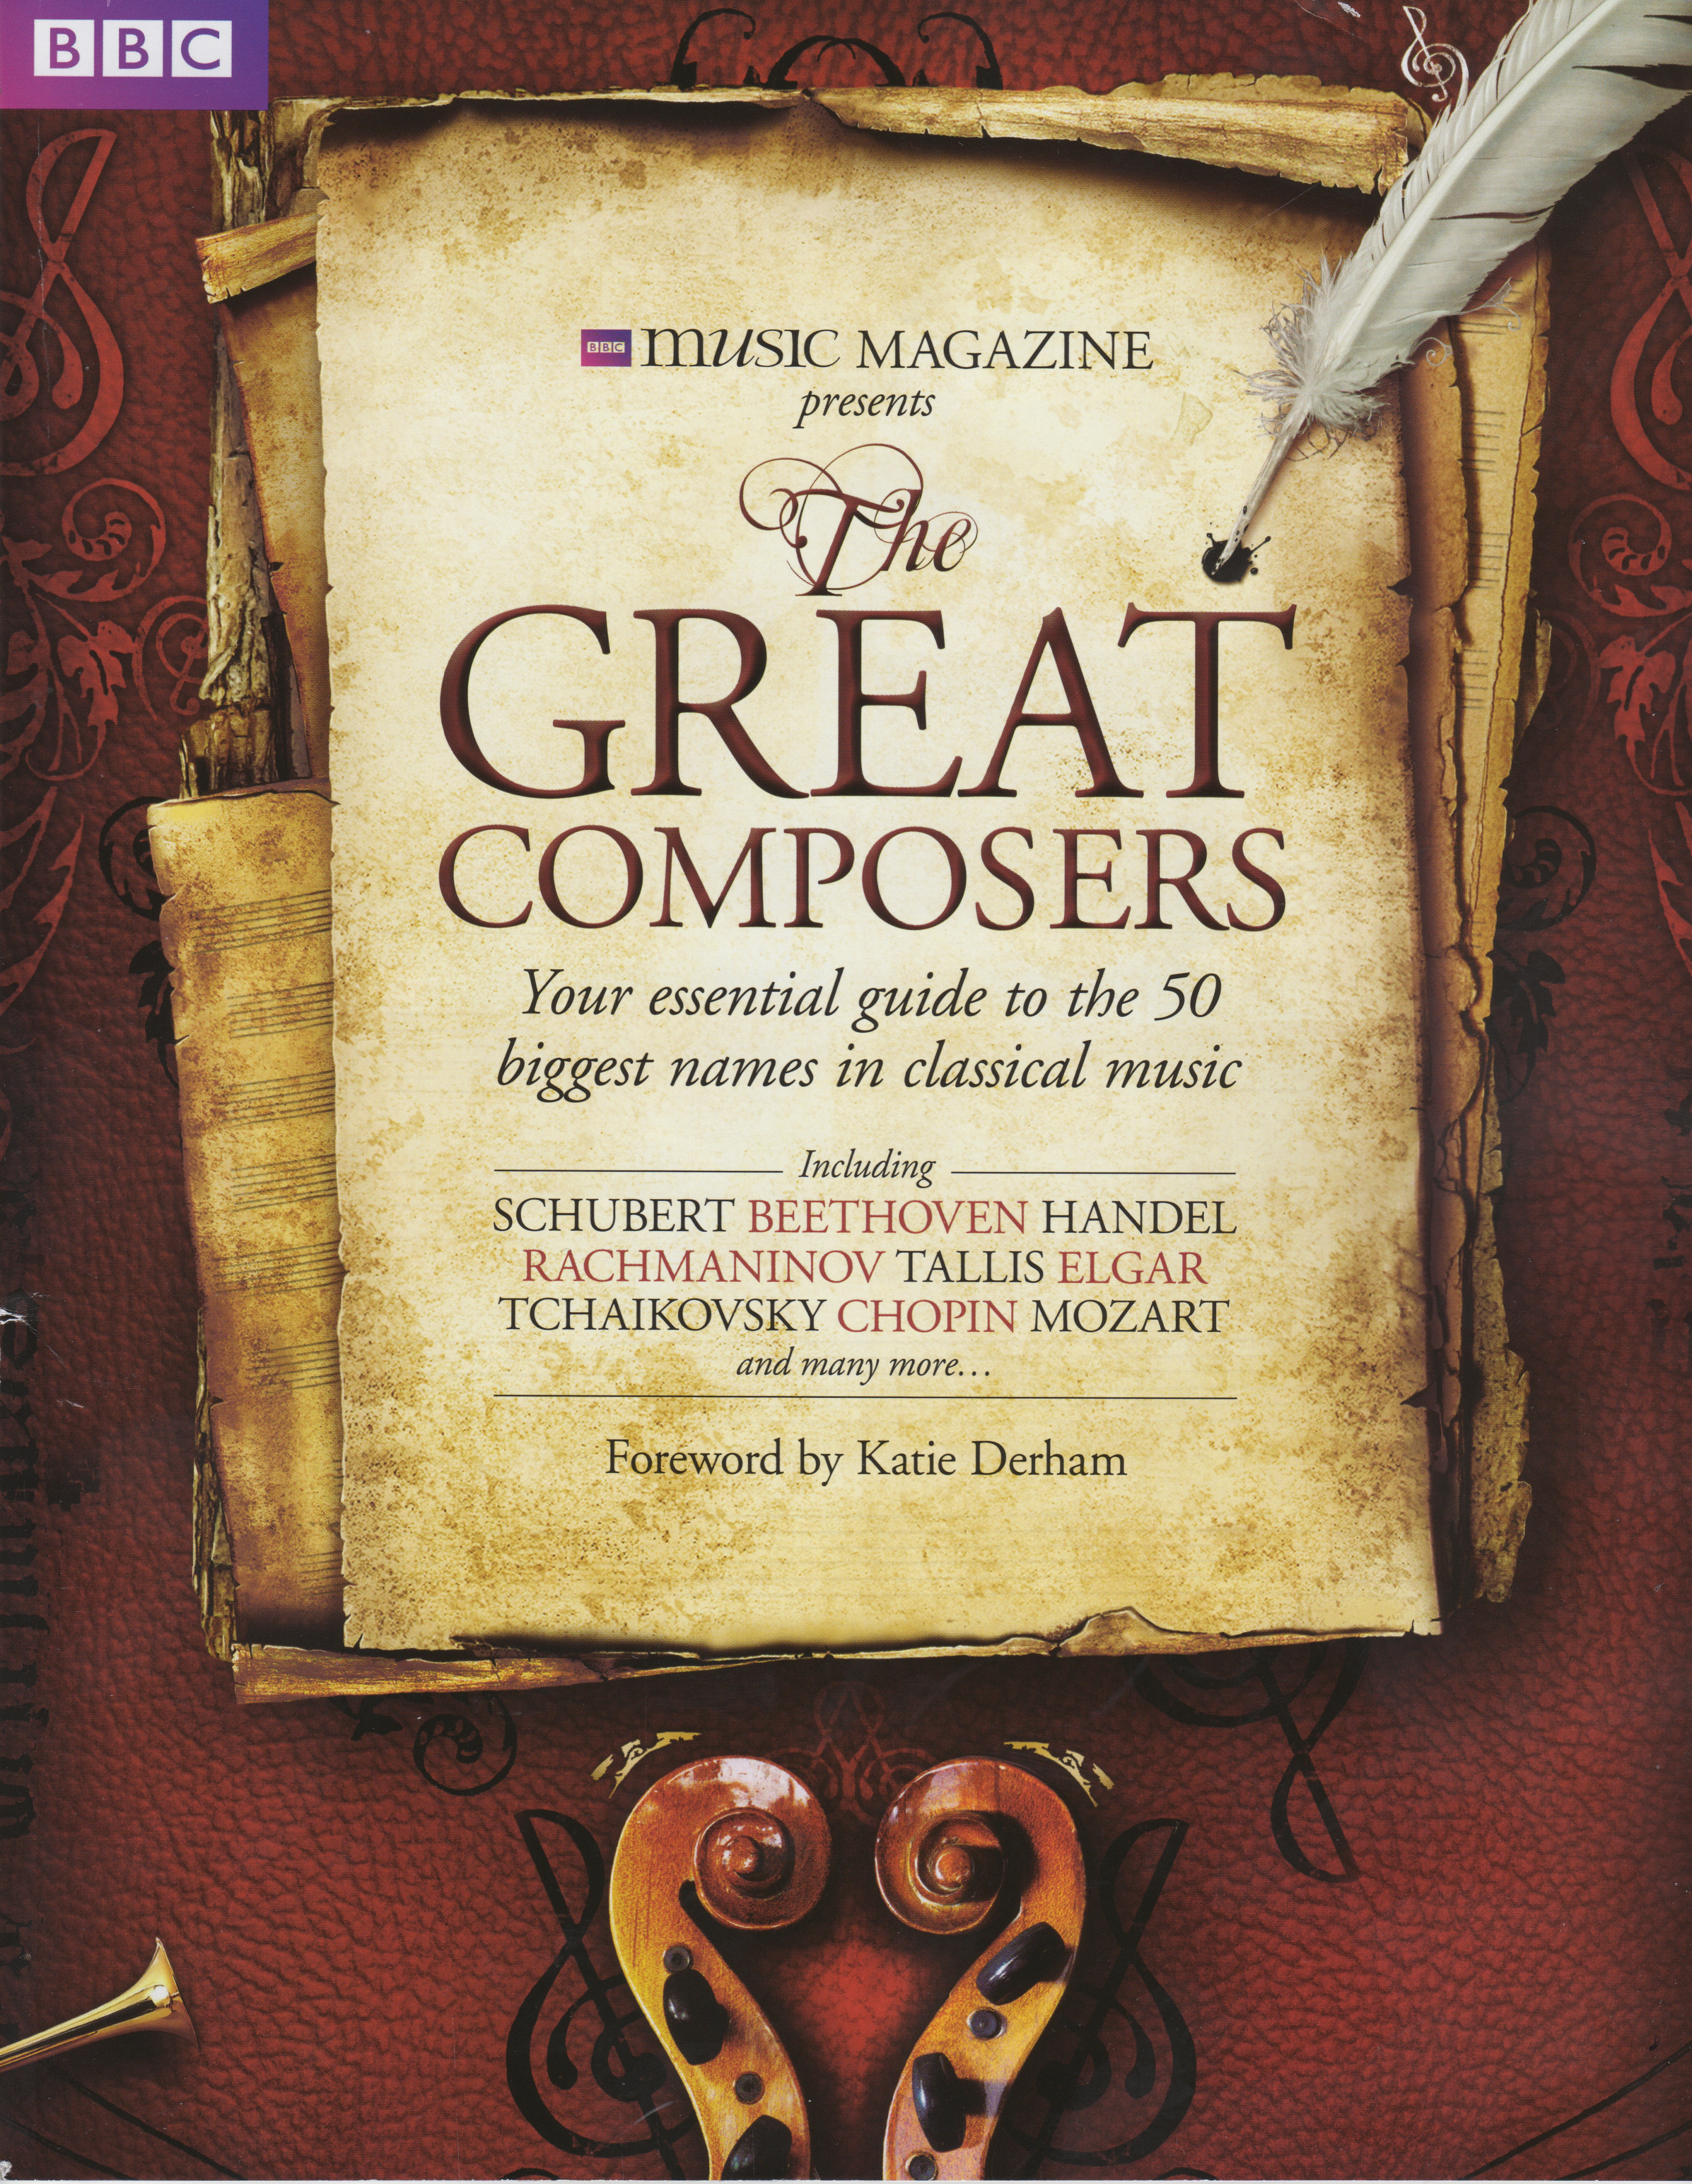 The Great Composers | Classical-Music.com